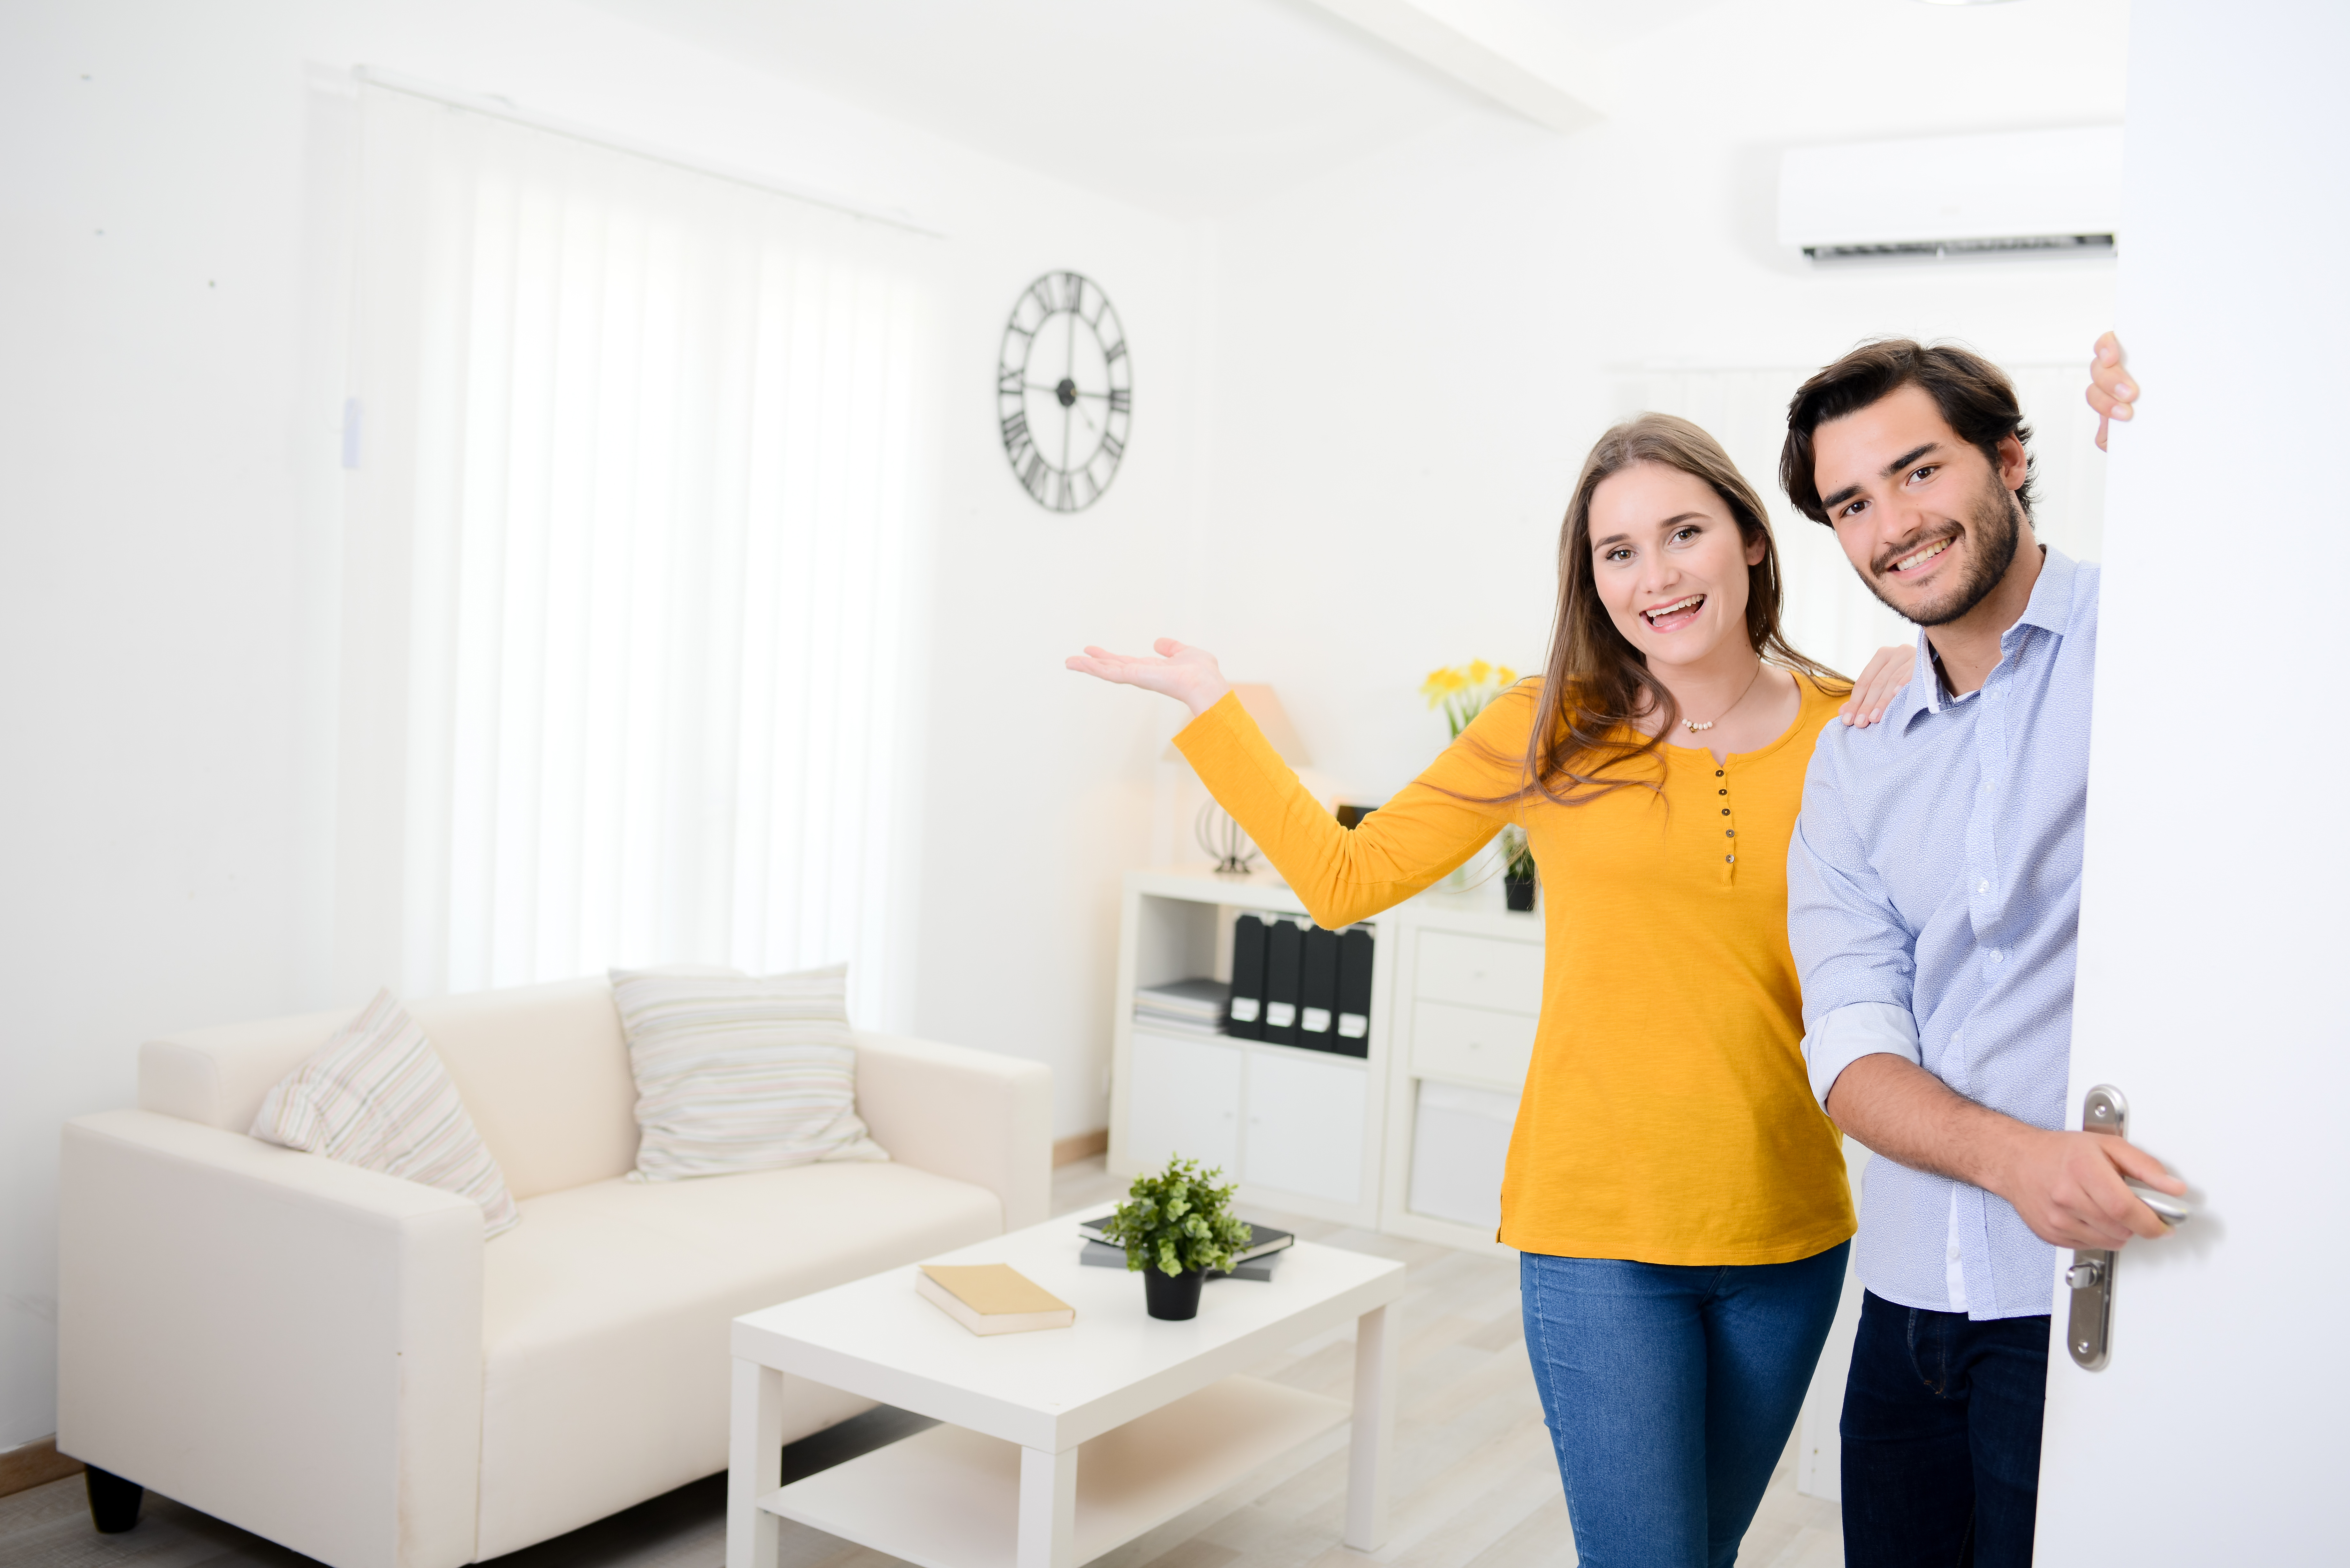 cheerful young couple man and woman welcome  at open front door new home apartment